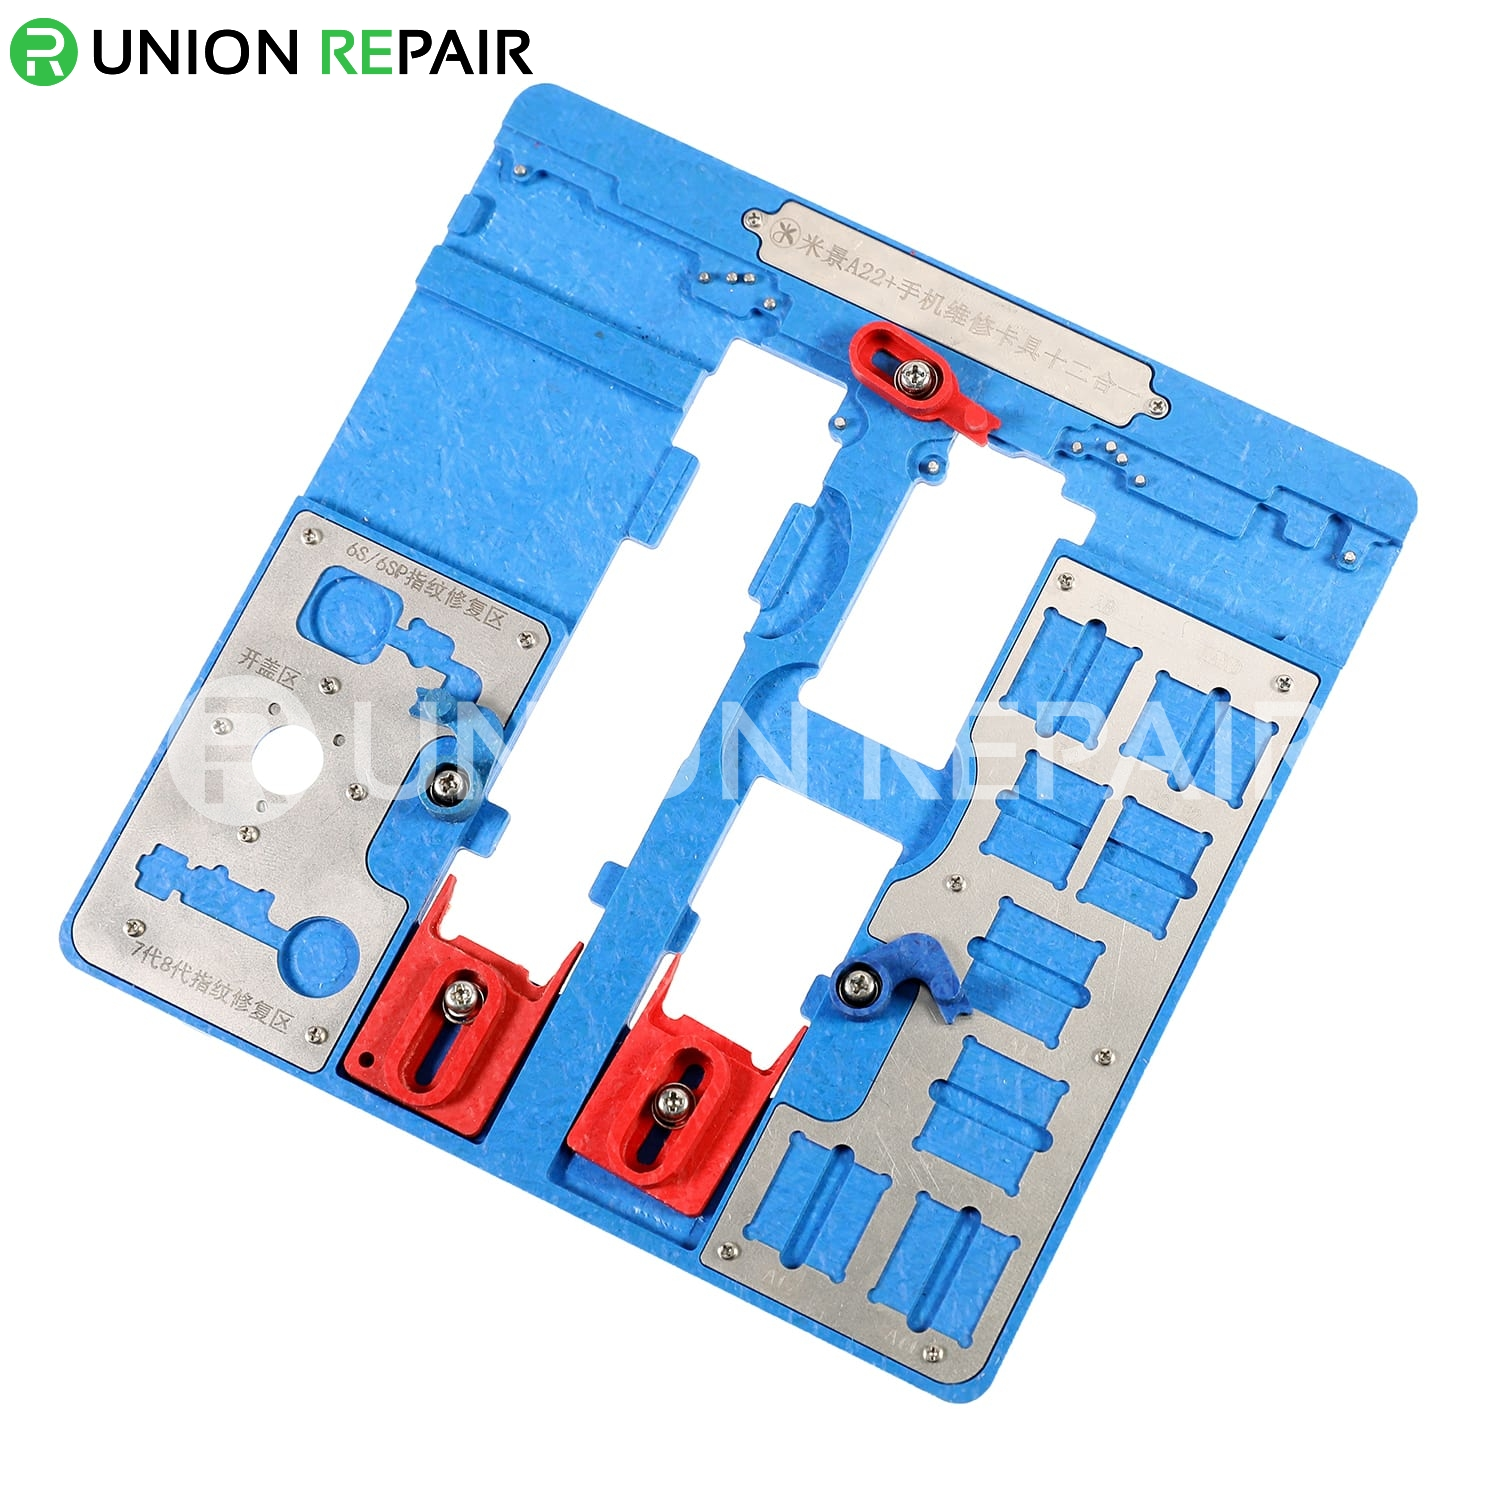 MJ 9 IN 1 A22+ iPhone Motherboard Test Fixture For 5S-XR